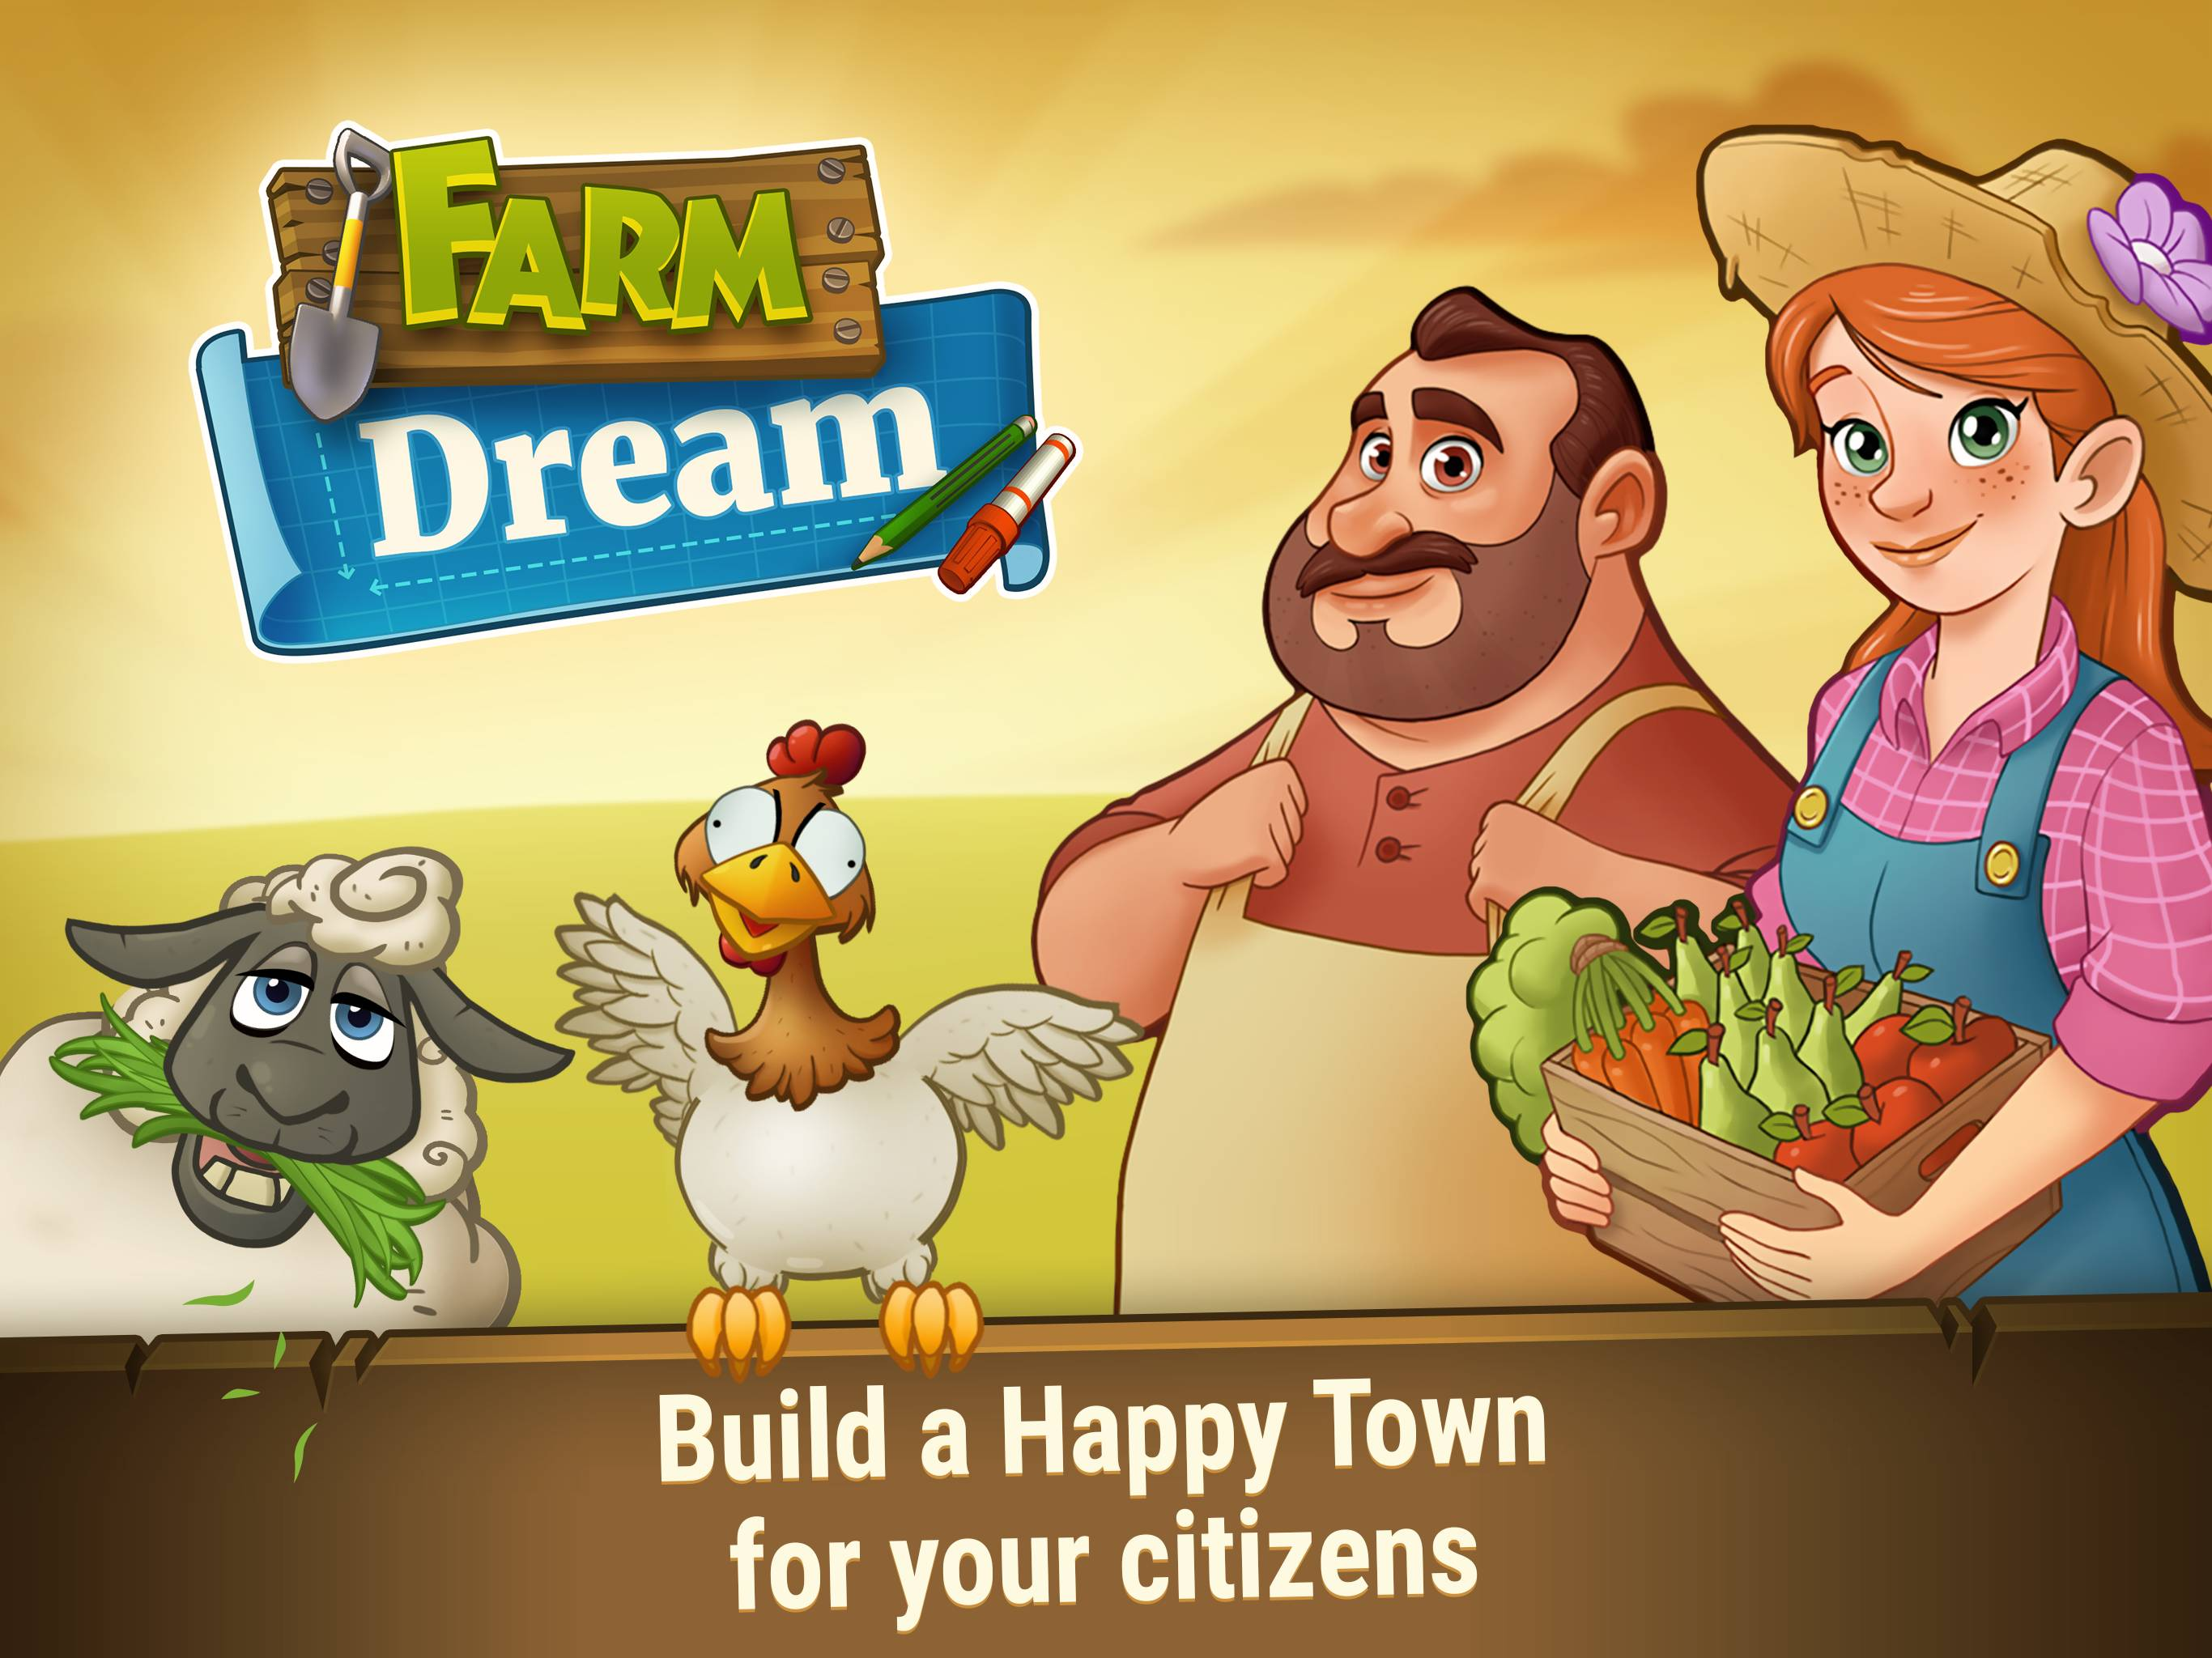 Farm Dream: Harvest your Town on Farming Day